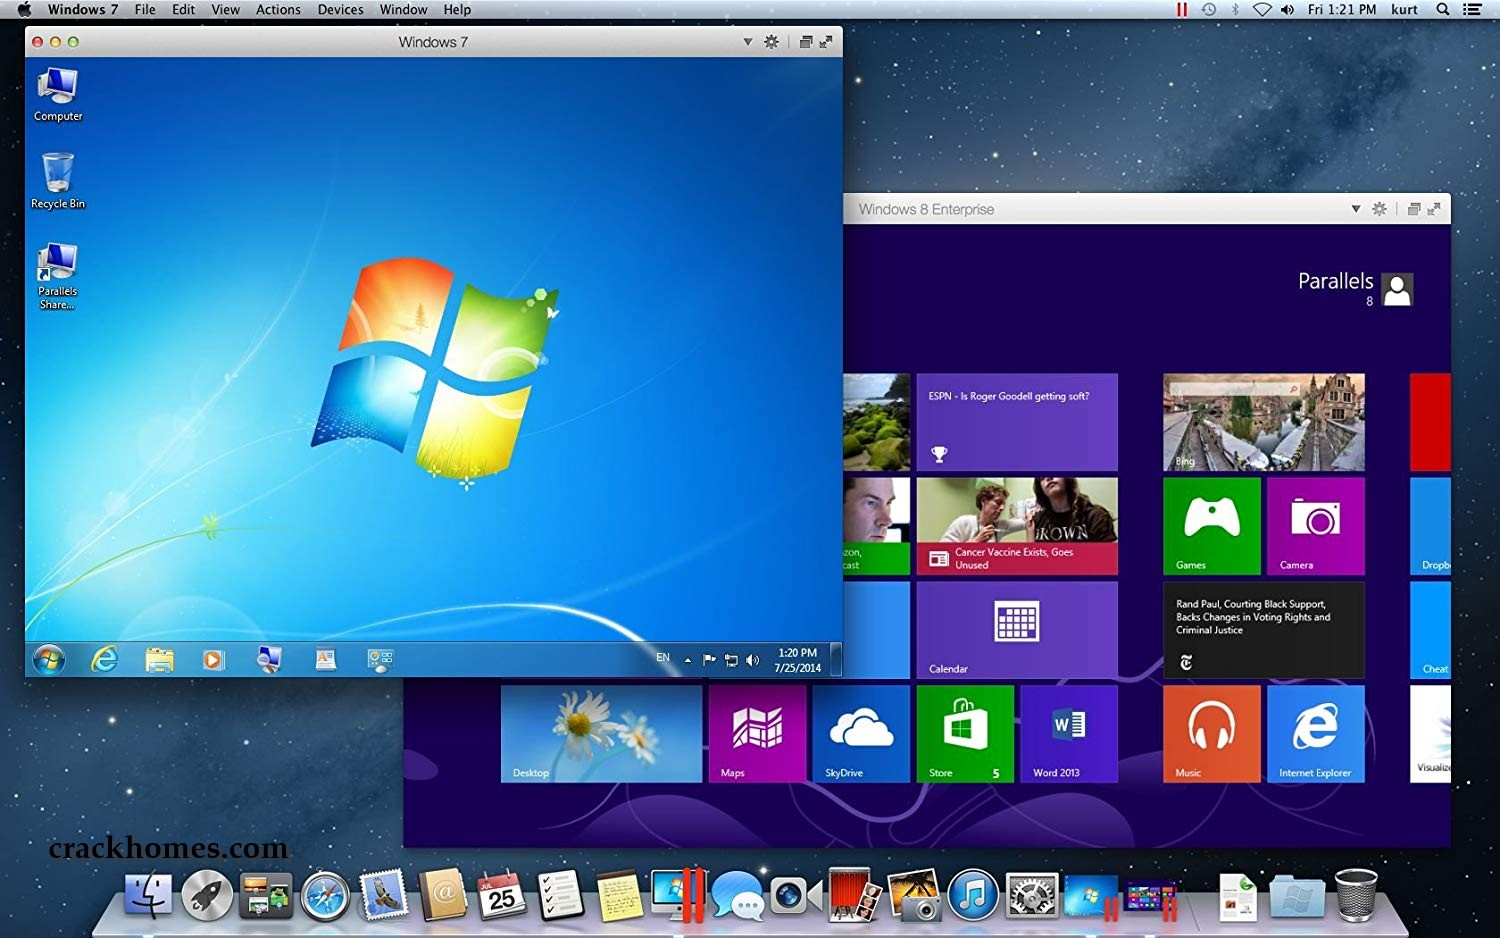 open windows keygen on mac